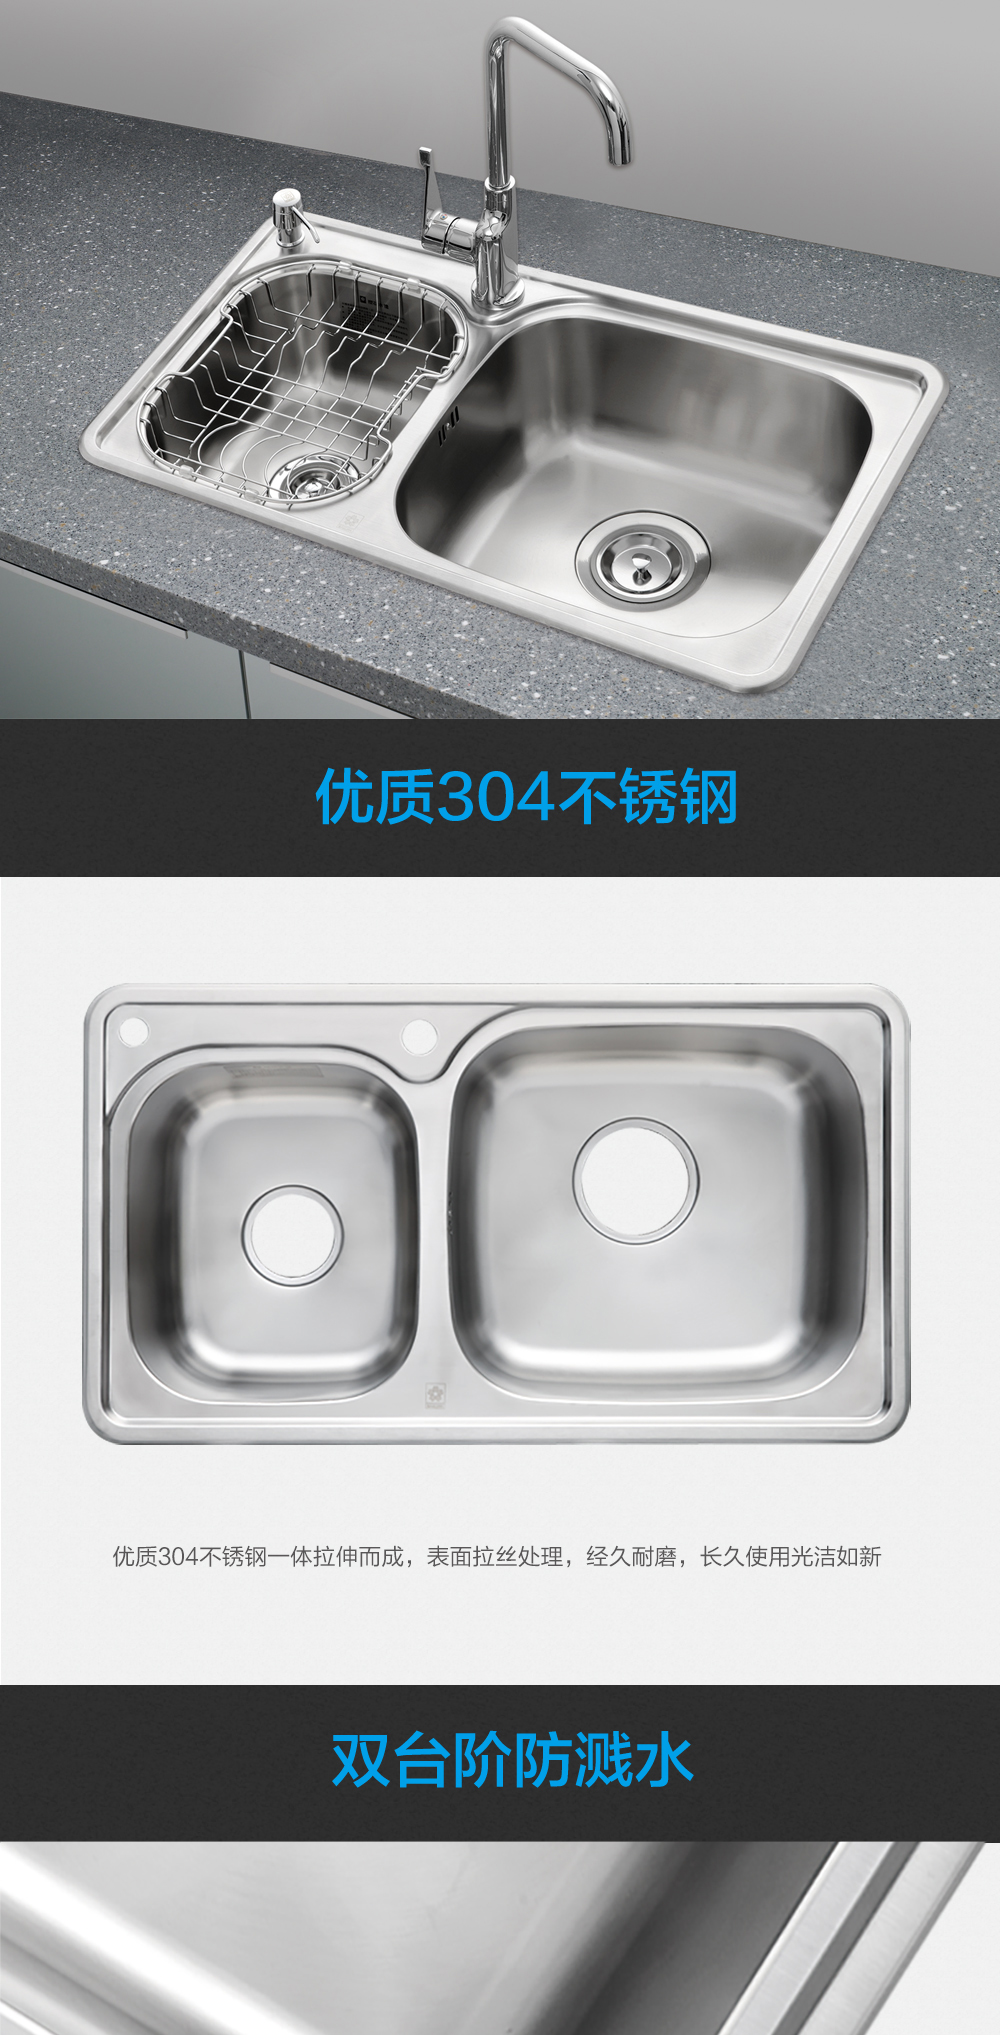 kitchen mat sets commercial exhaust system design sakura樱花-产品中心_水槽_水槽st-3325n | 樱花卫厨官网